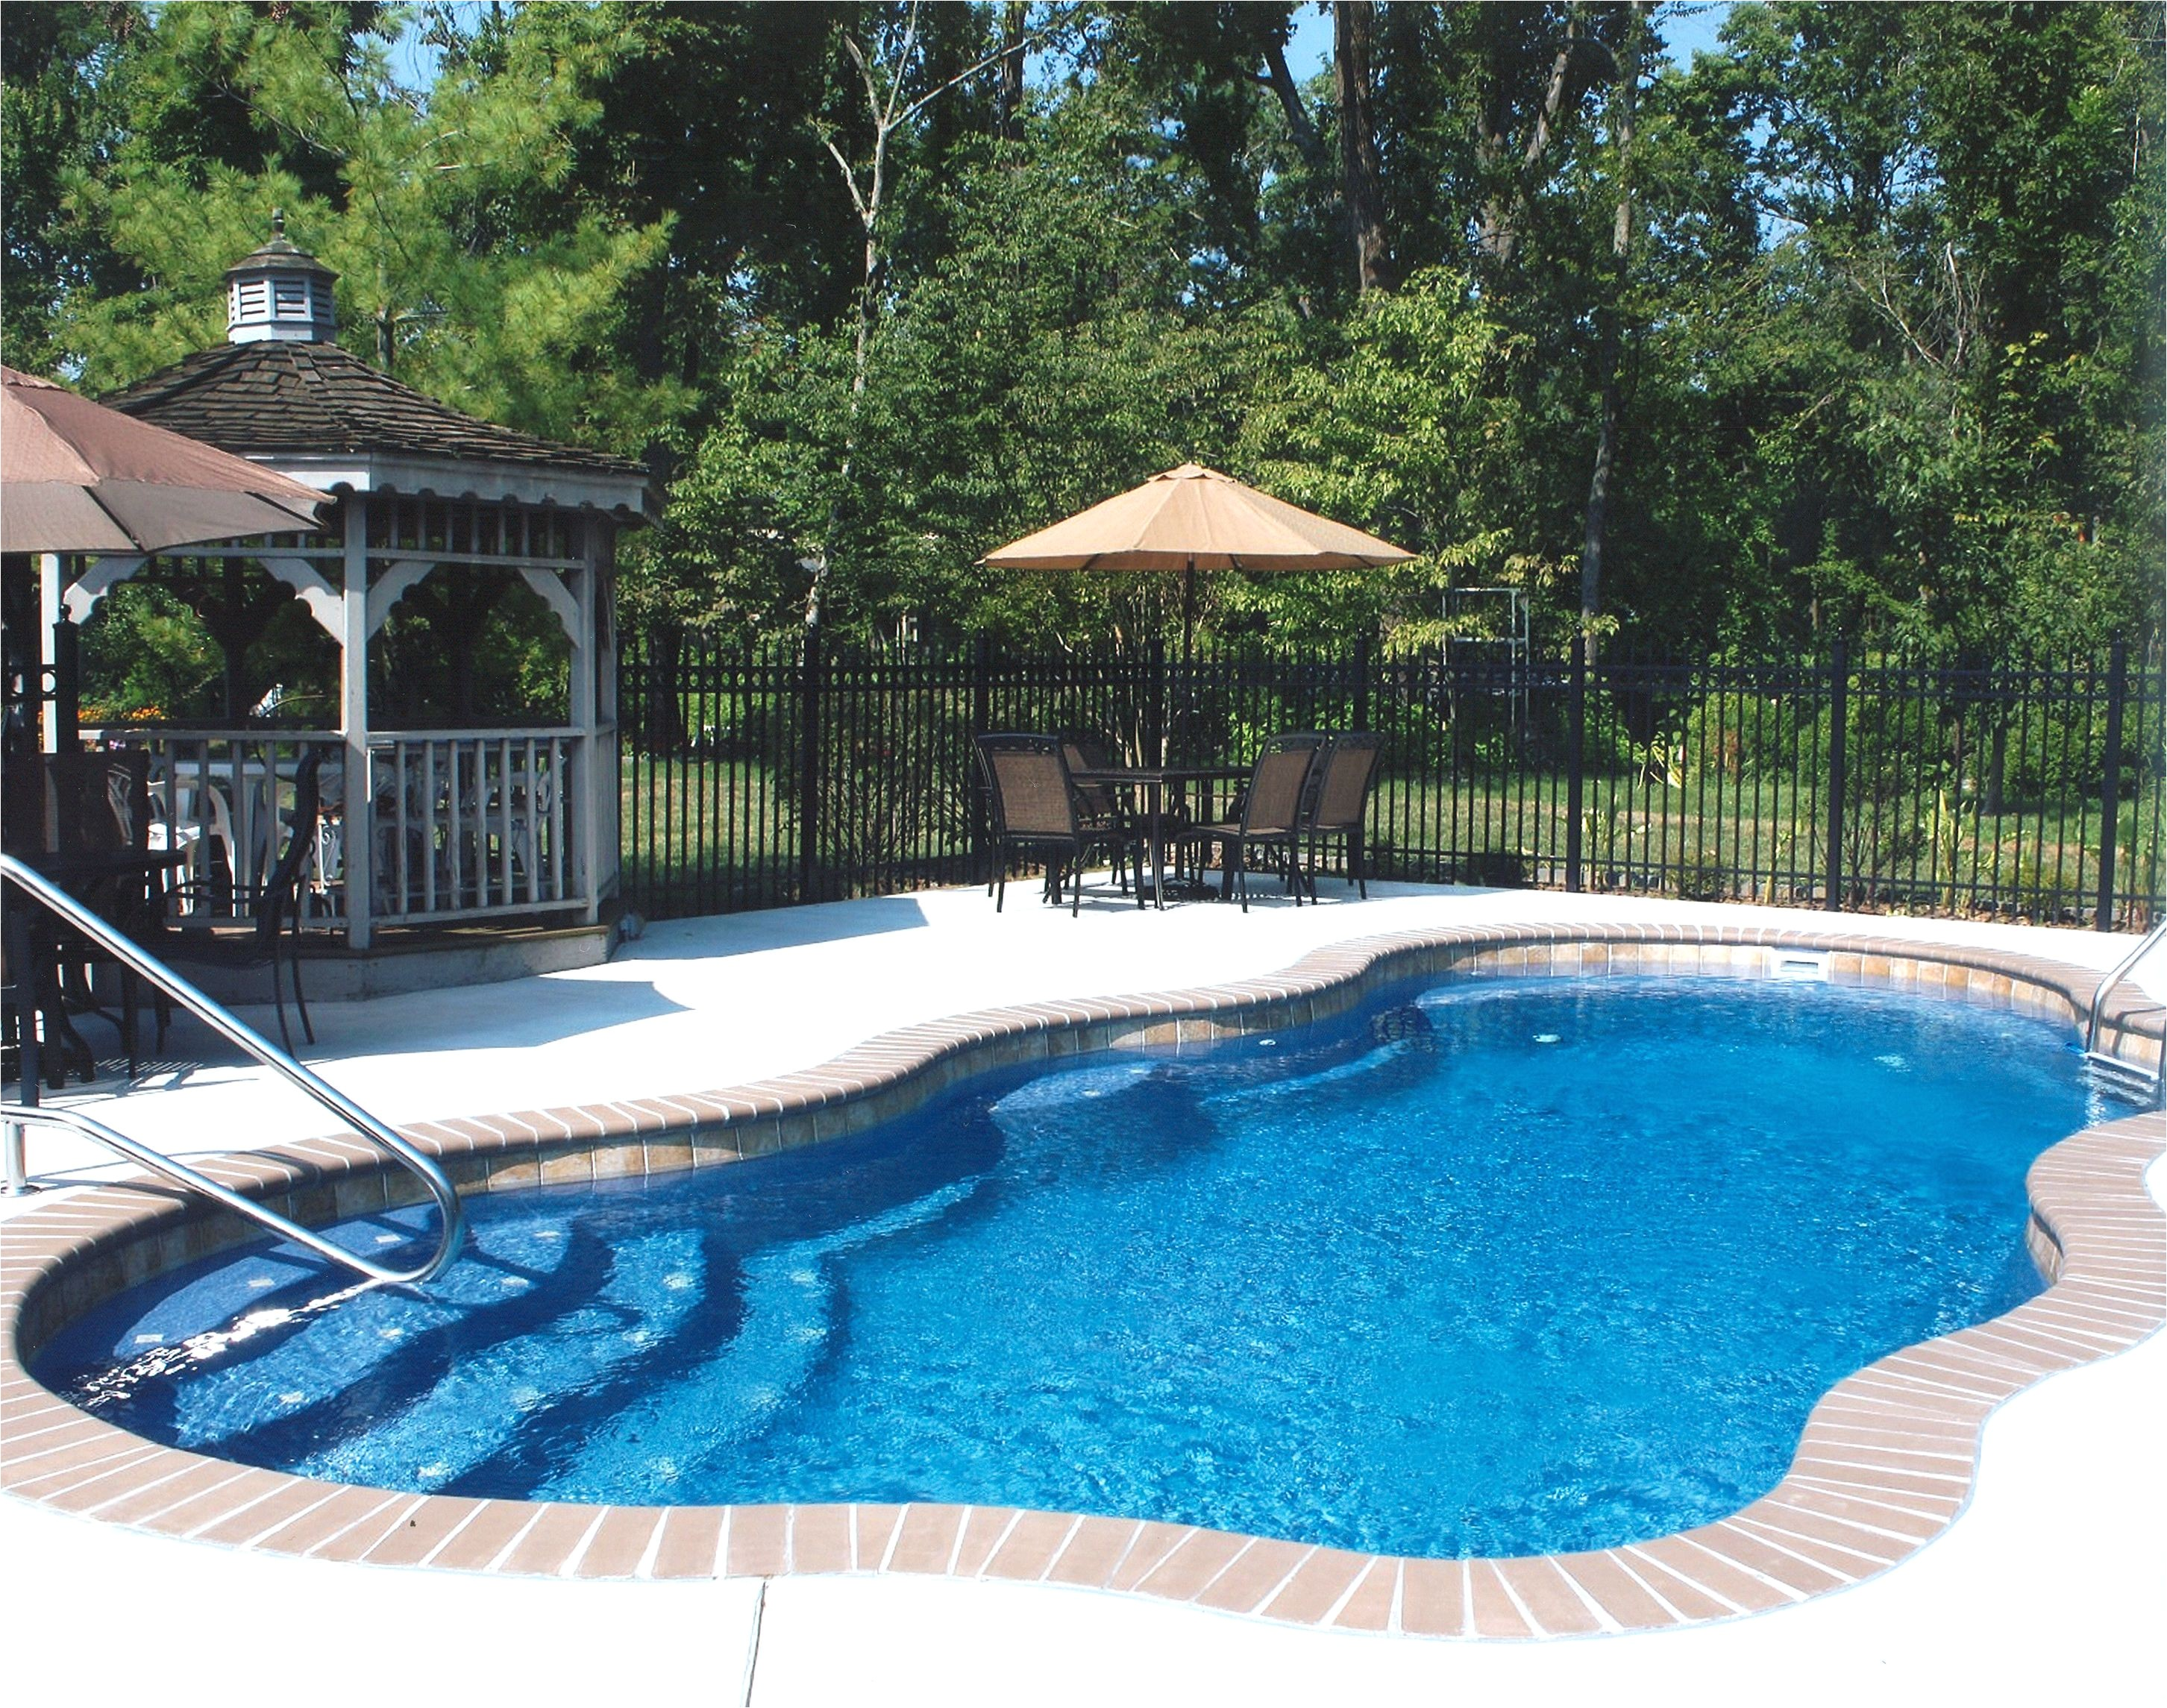 pictures of fiberglass pools fiberglass pool with water line tile and brick coping